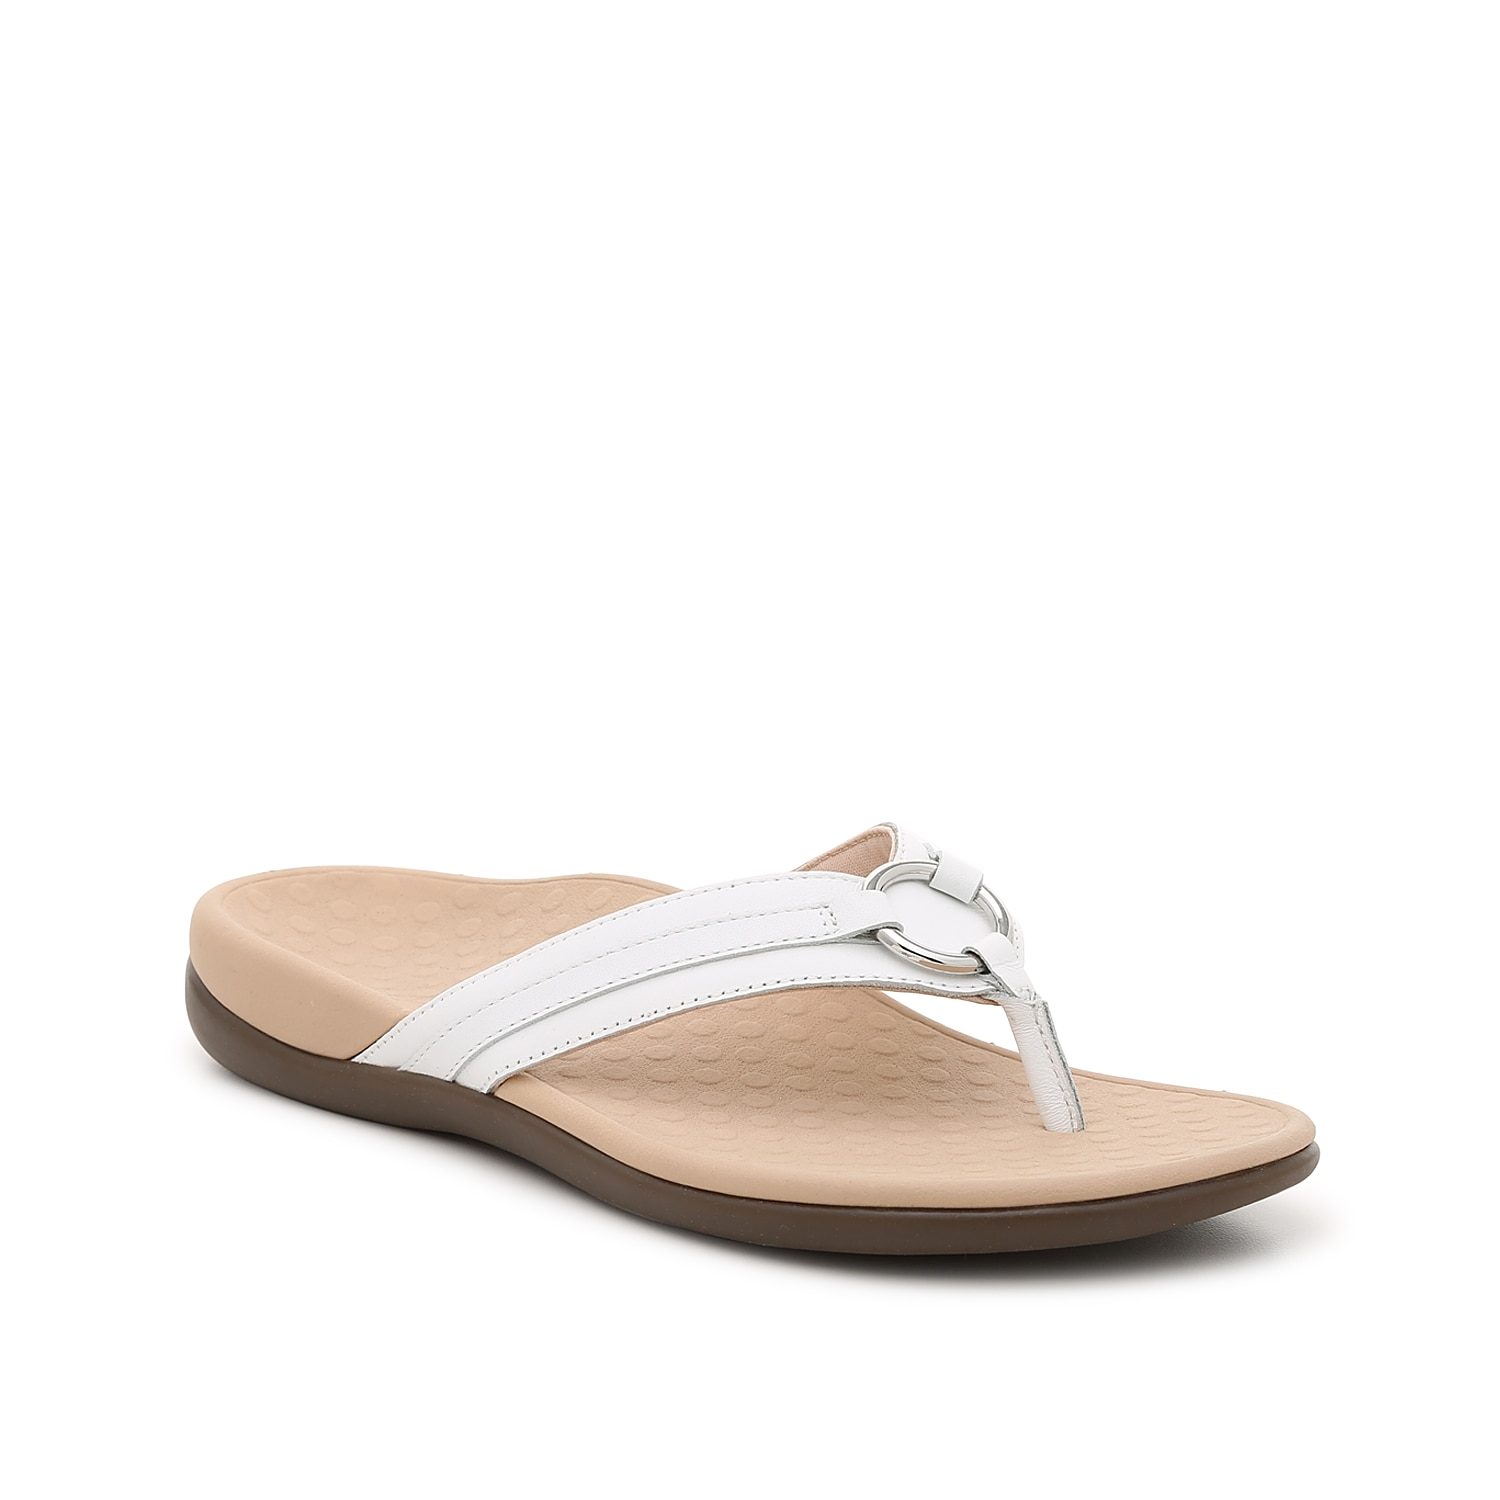 Versatile and comfortable, the Tide Aloe sandal from Vionic will keep you supported all summer long. A contoured footbed with a deep heel cup and unbeatable arch support will make this flip flop your new favorite.